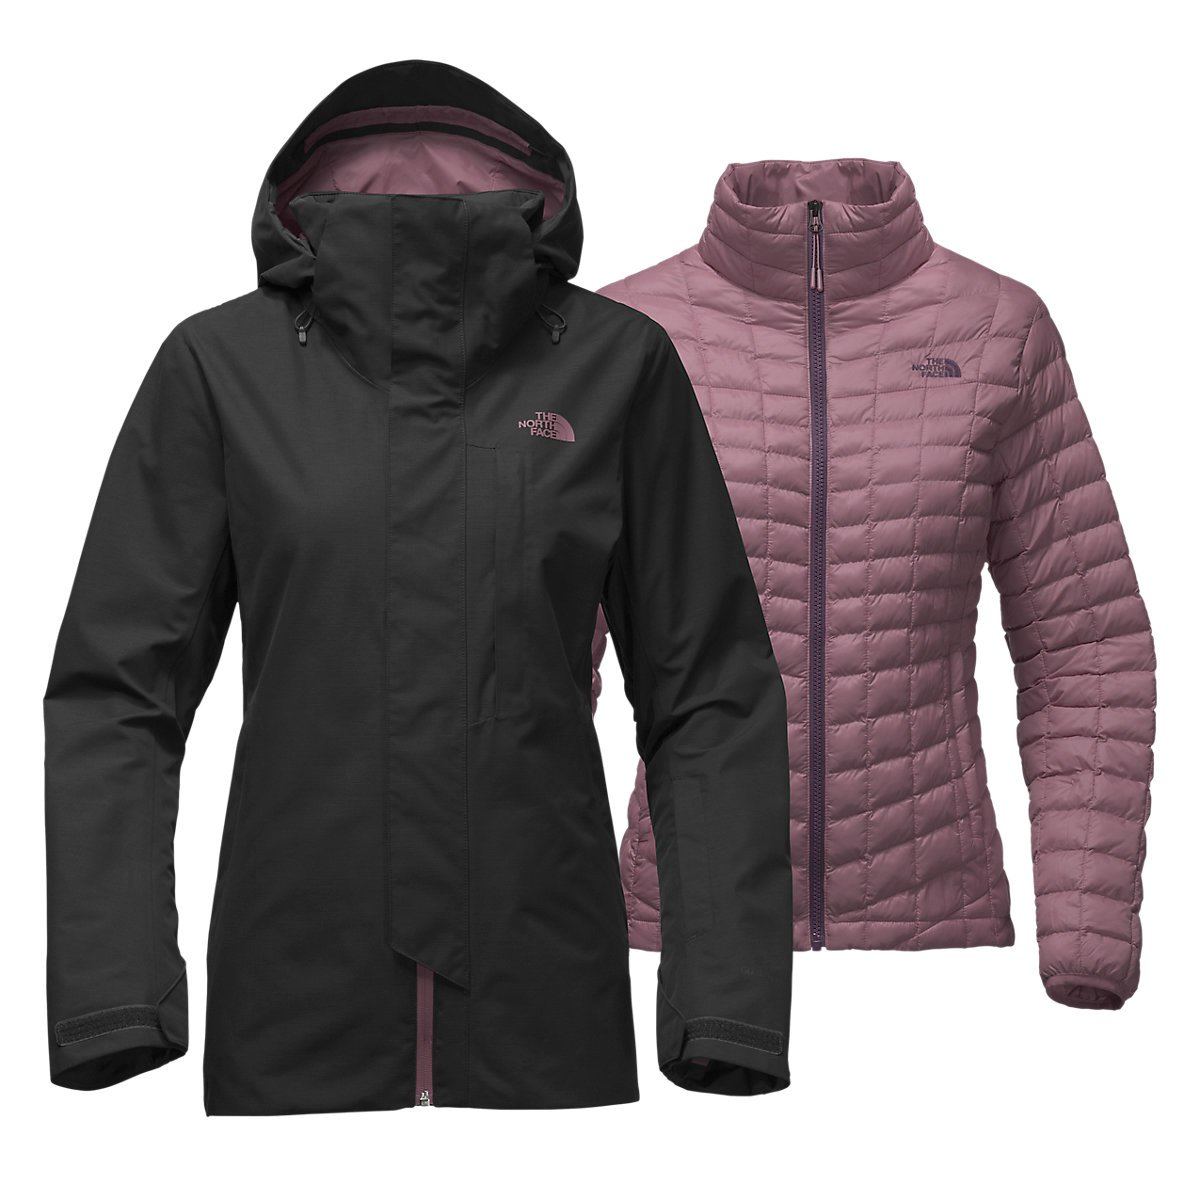 North Face Alligare Triclimate Hooded 3-in-1 Jacket Womens Style : A333I-JK3 Size : S